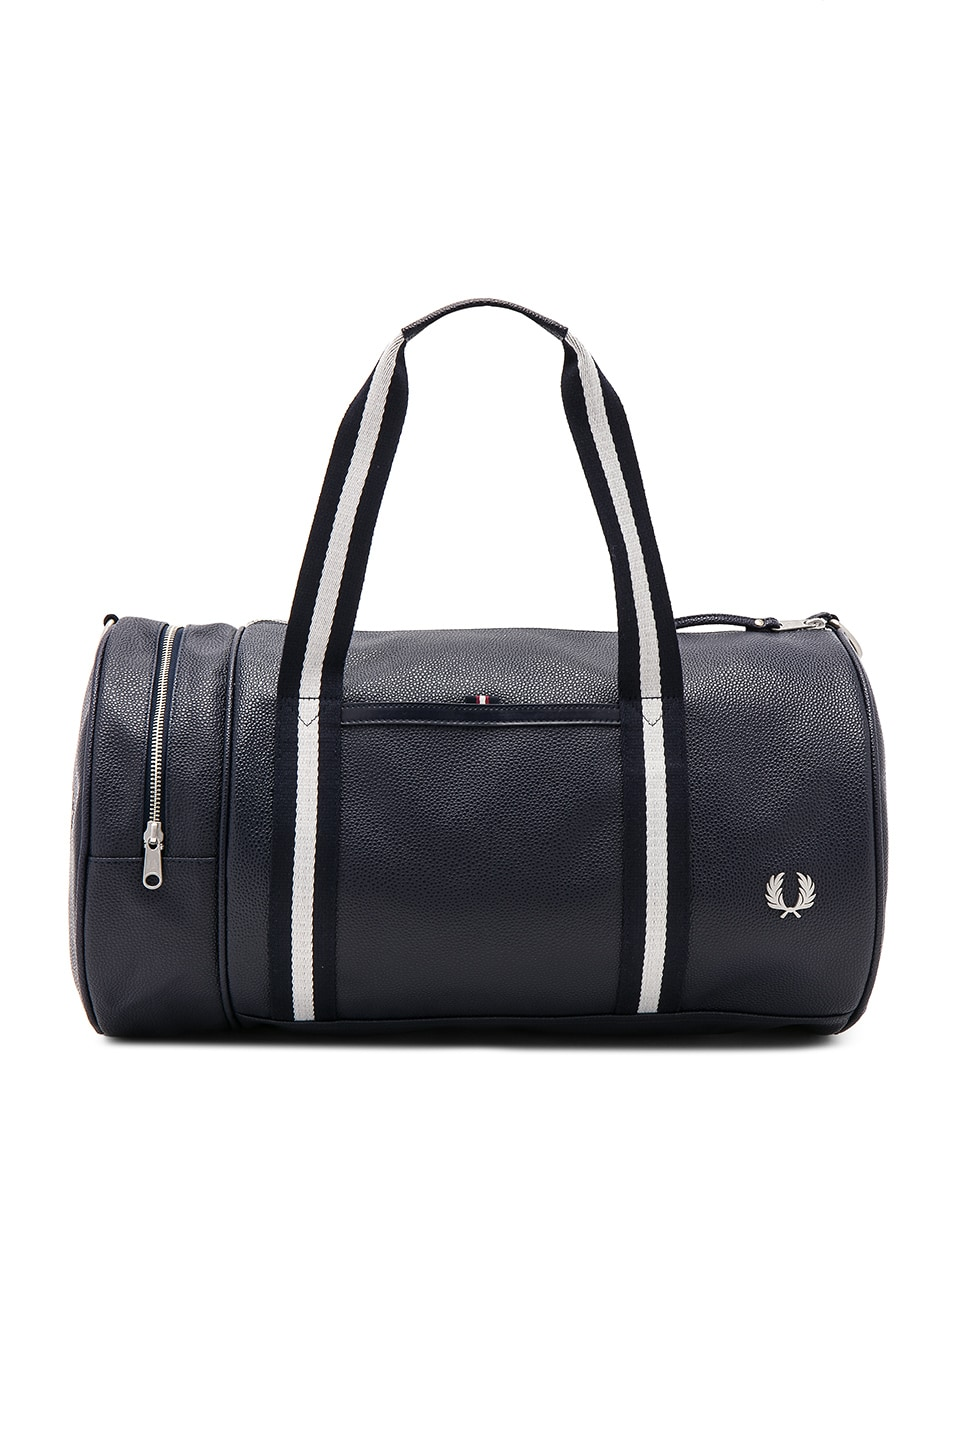 Photo of Scotch Grain Barrel Bag by Fred Perry men clothes